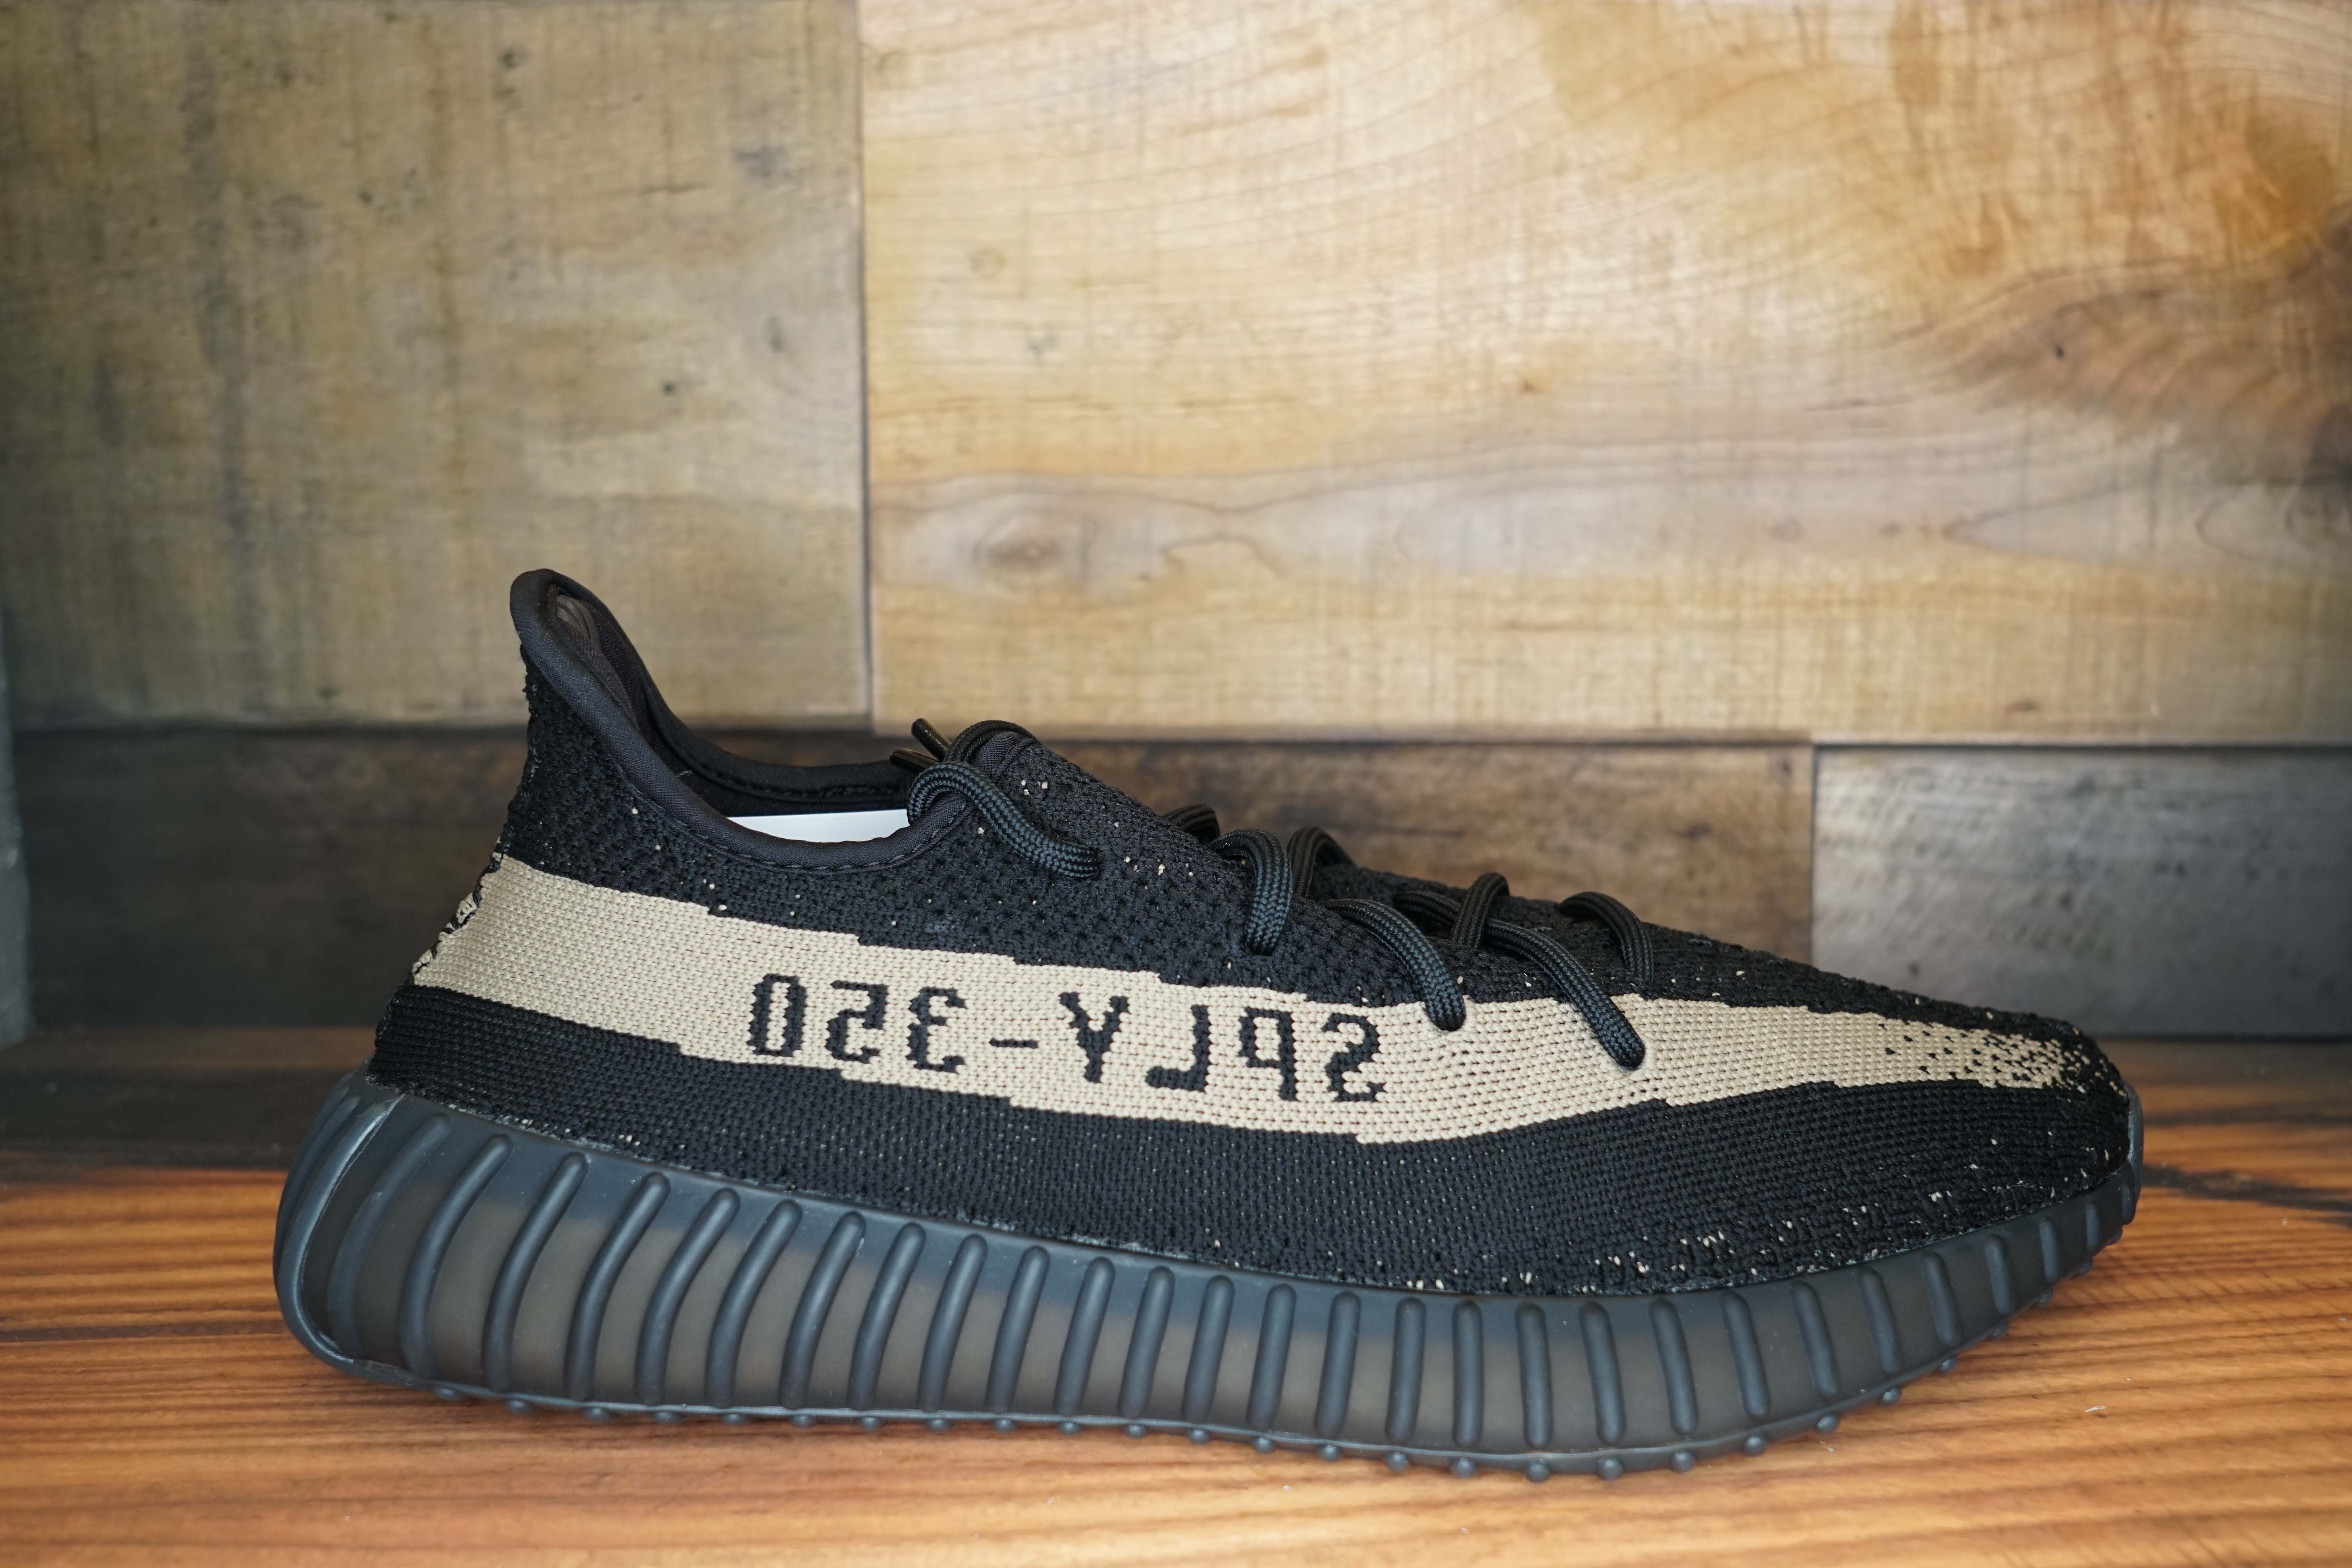 39cc3232bceed ... shopping adidas yeezy boost 350 v2 green 2016 new bff8d 47410